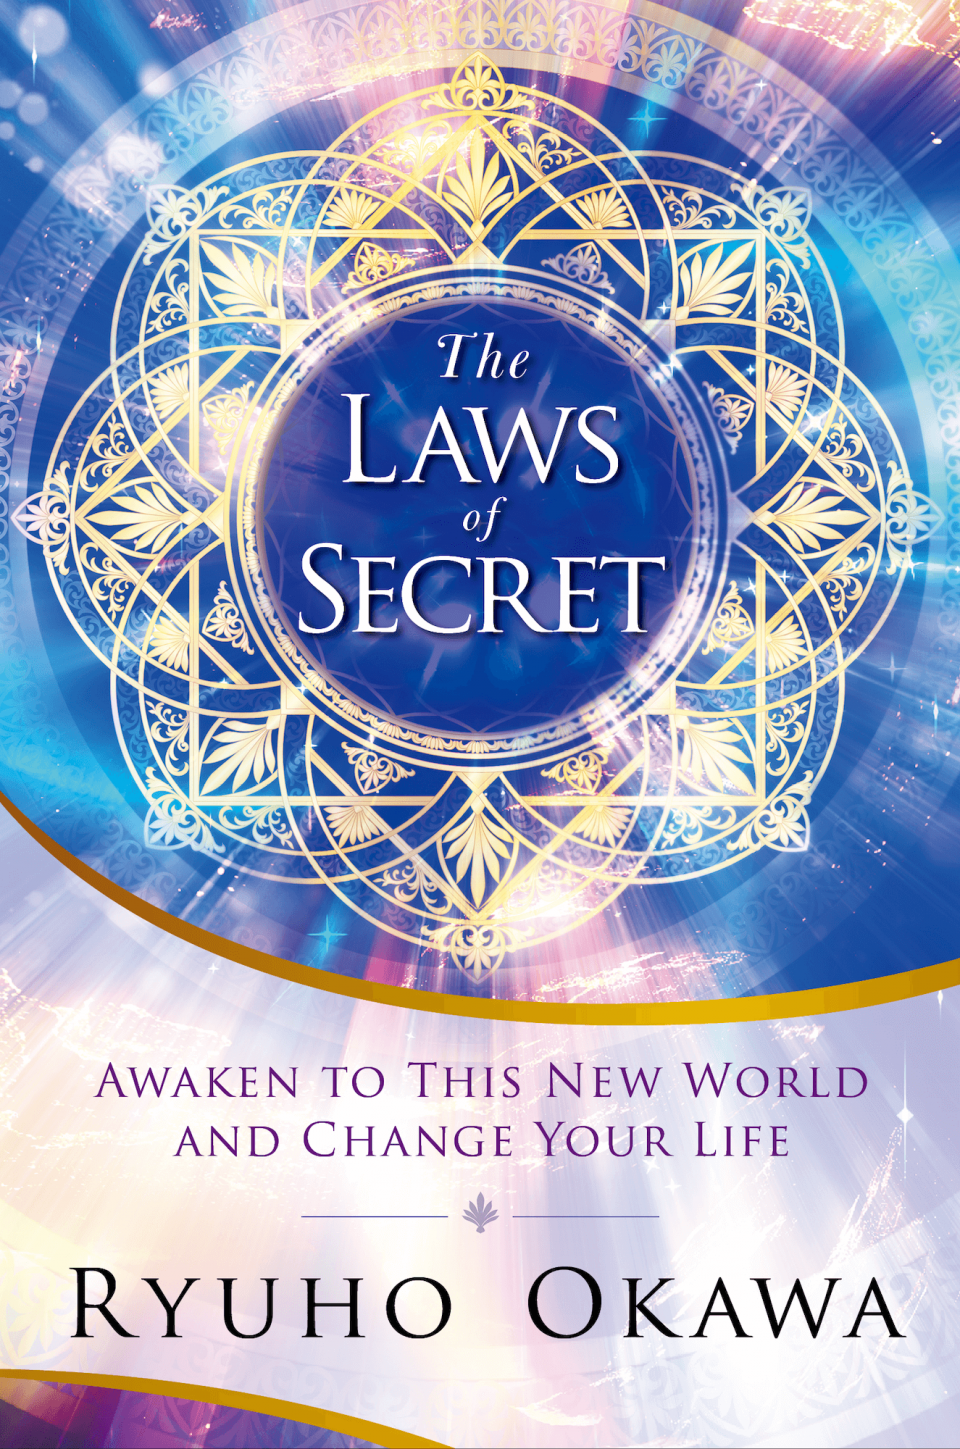 The Laws of Secret: Awaken to This New World and Change Your Life is out now!